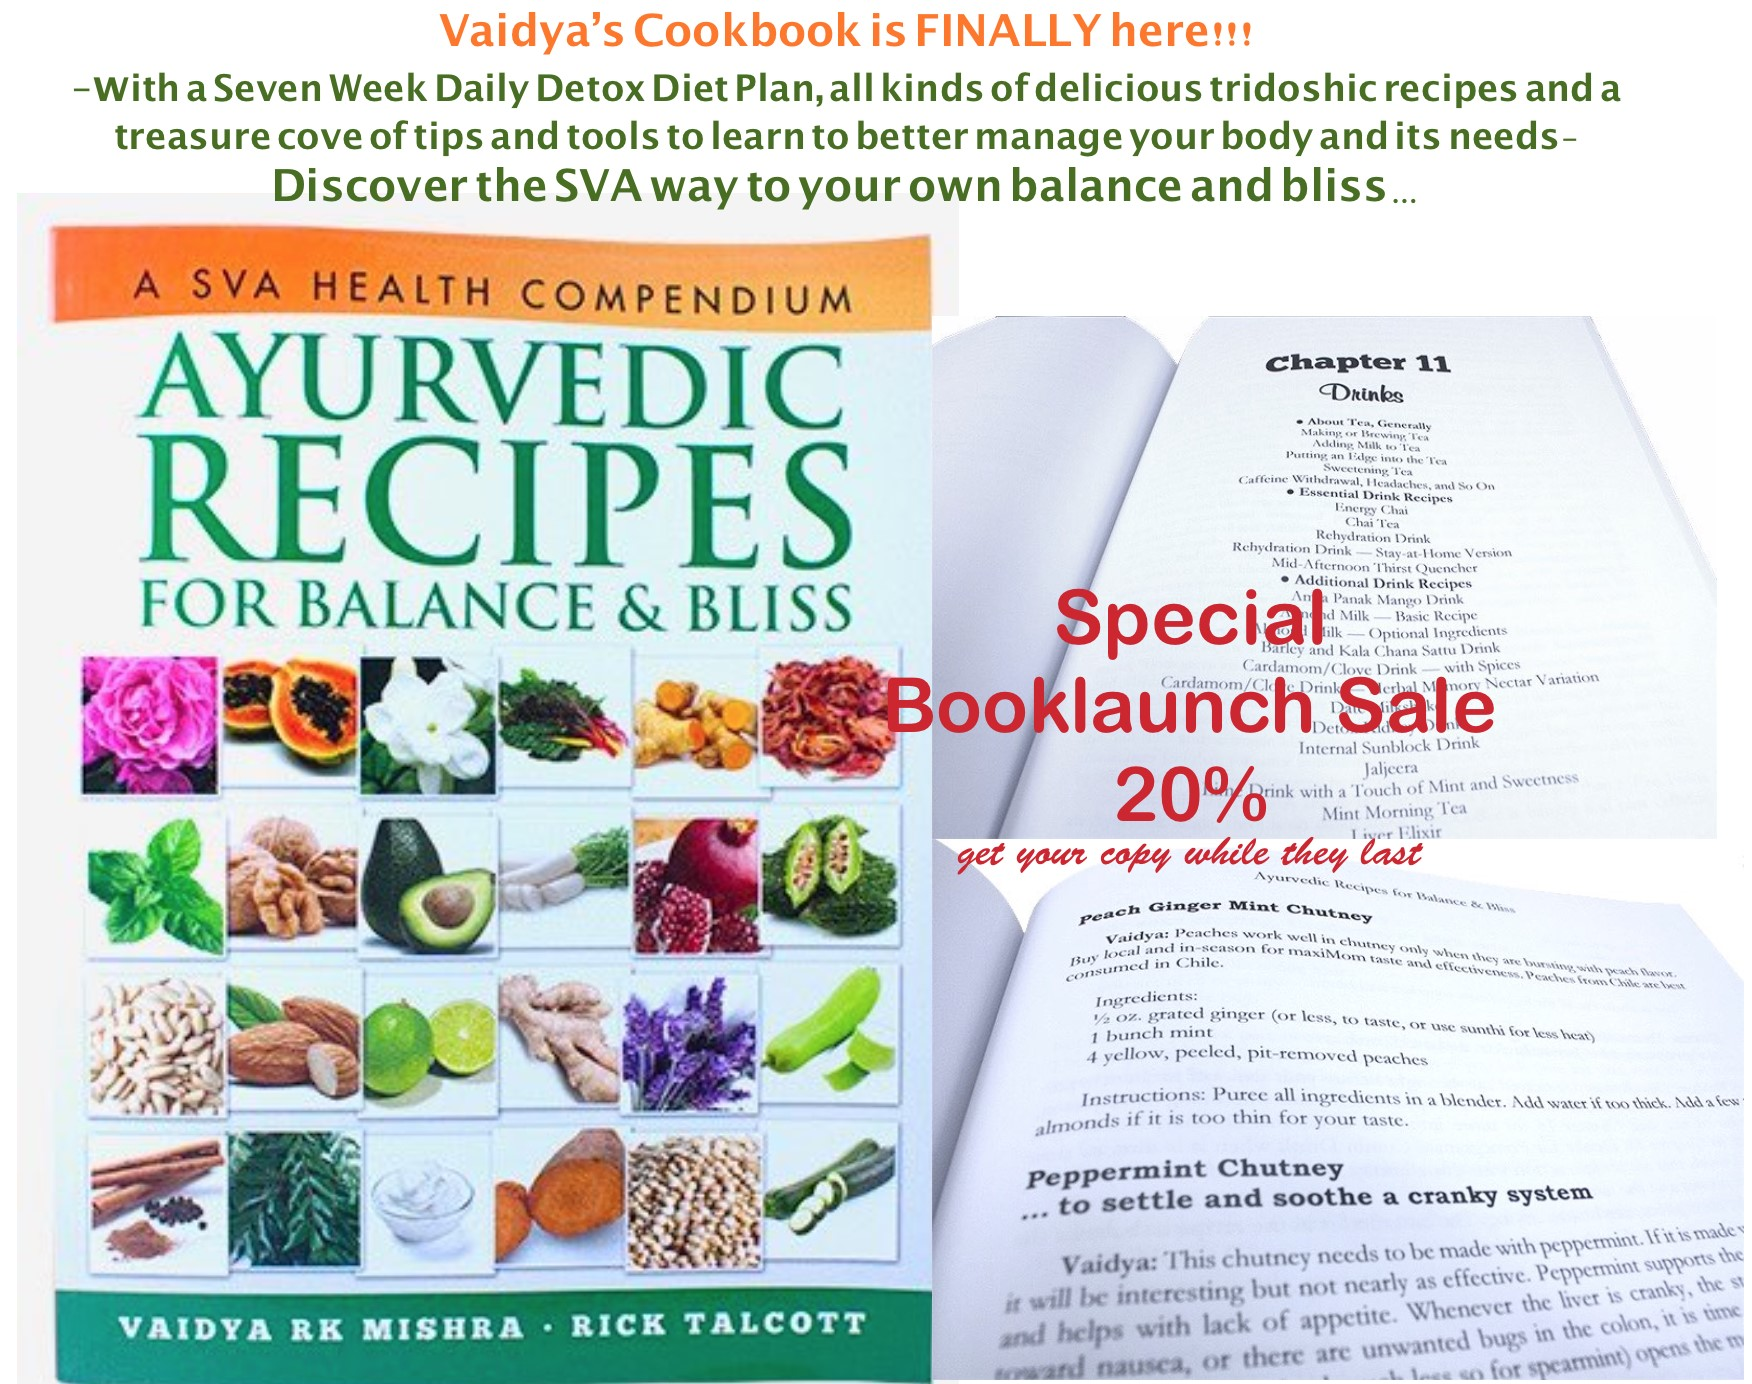 booklaunch-banner-cookbook.jpg